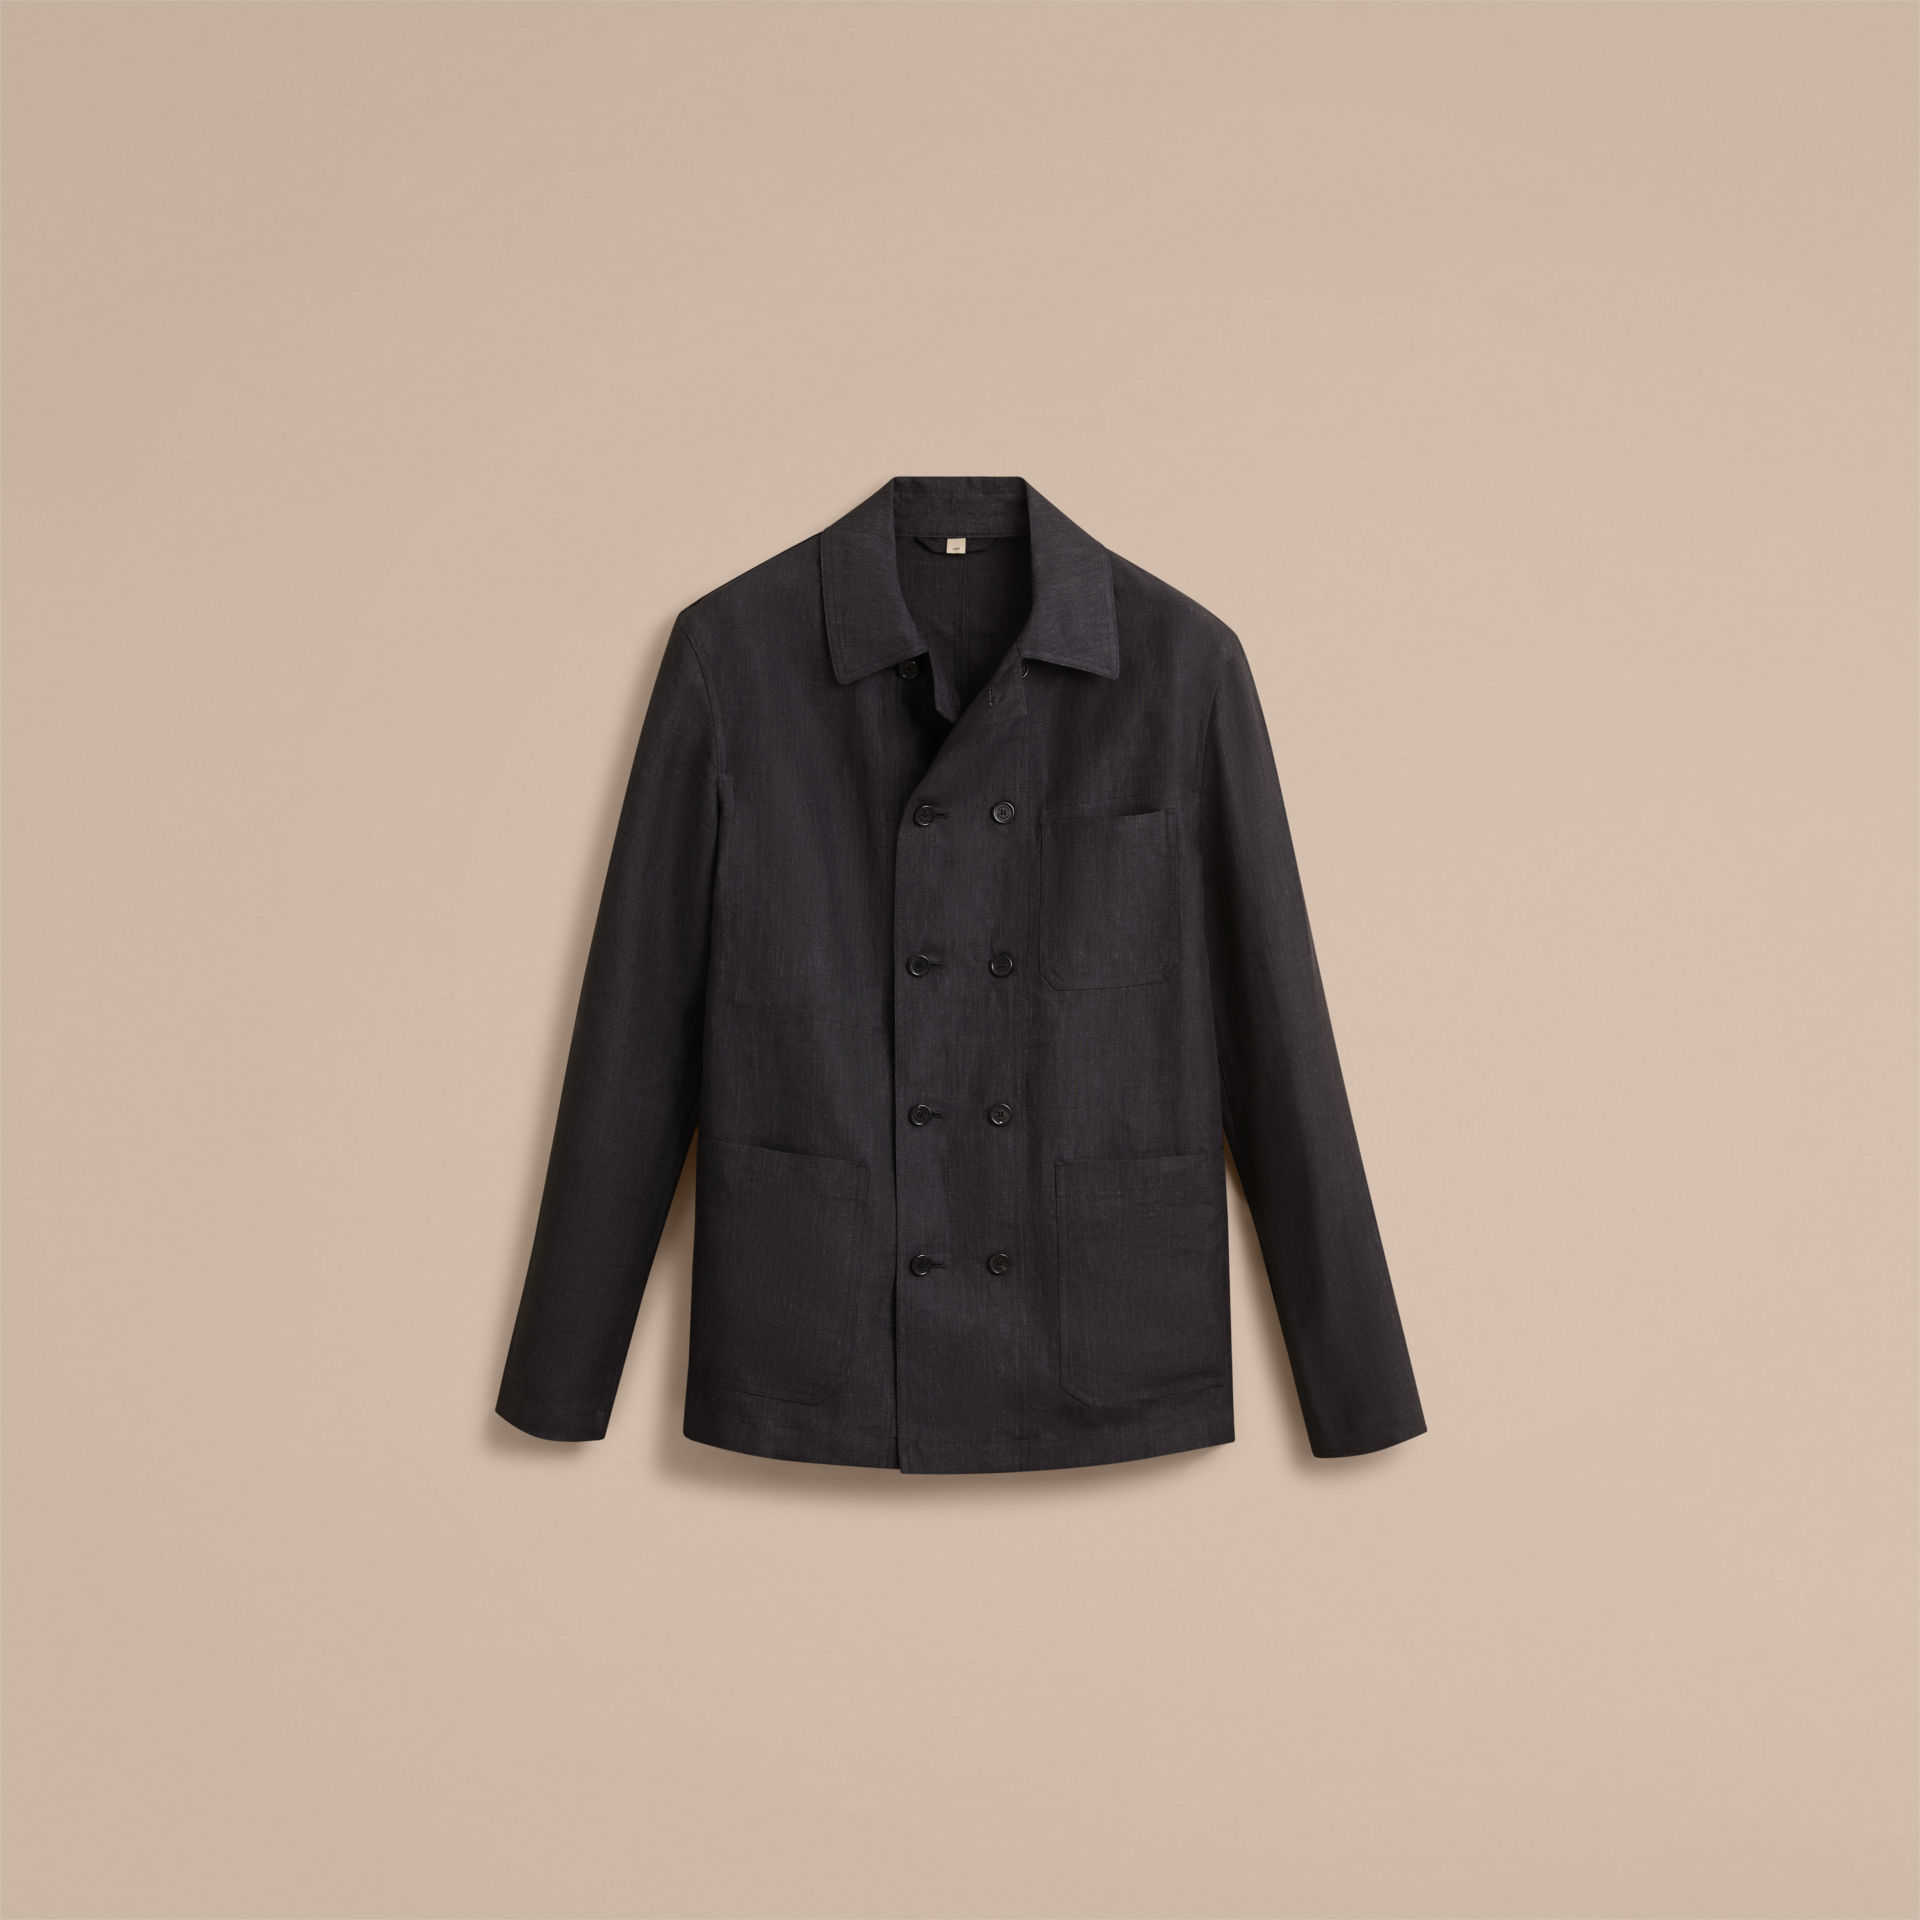 Burberry Charcoal Linen Double-breasted Artist Jacket